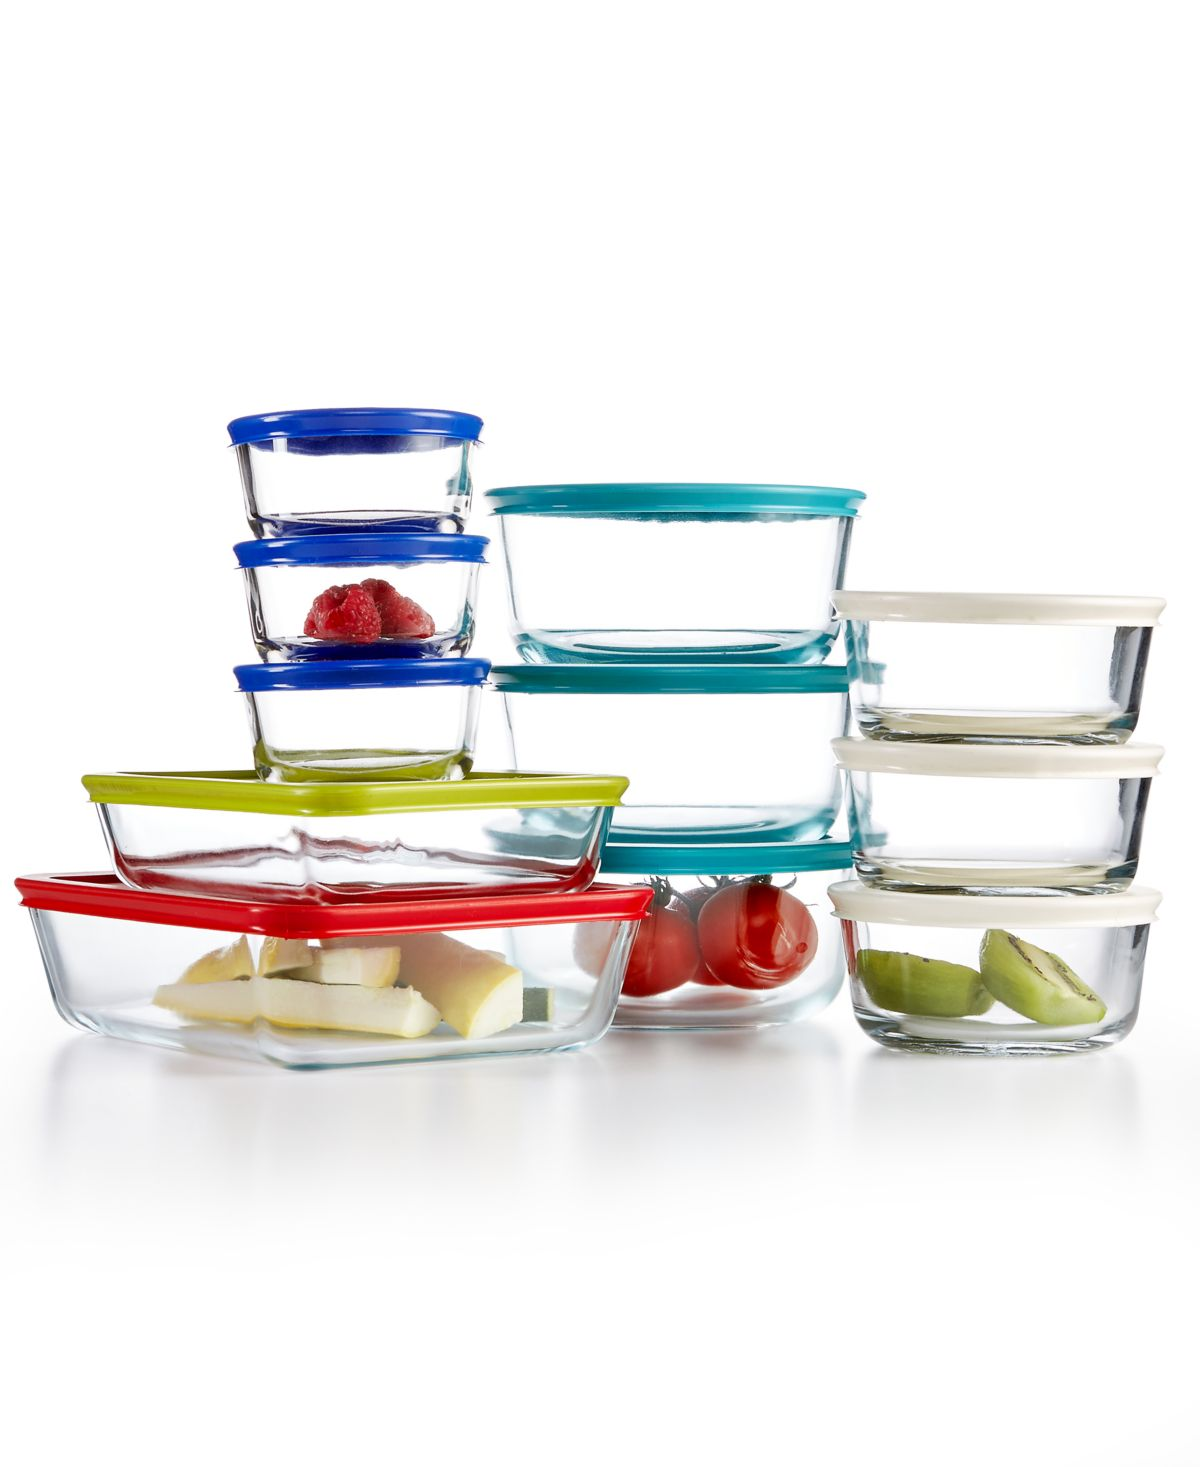 Pyrex 22-Pc. Food Storage Container Set - $24.99 at Macy's online deal